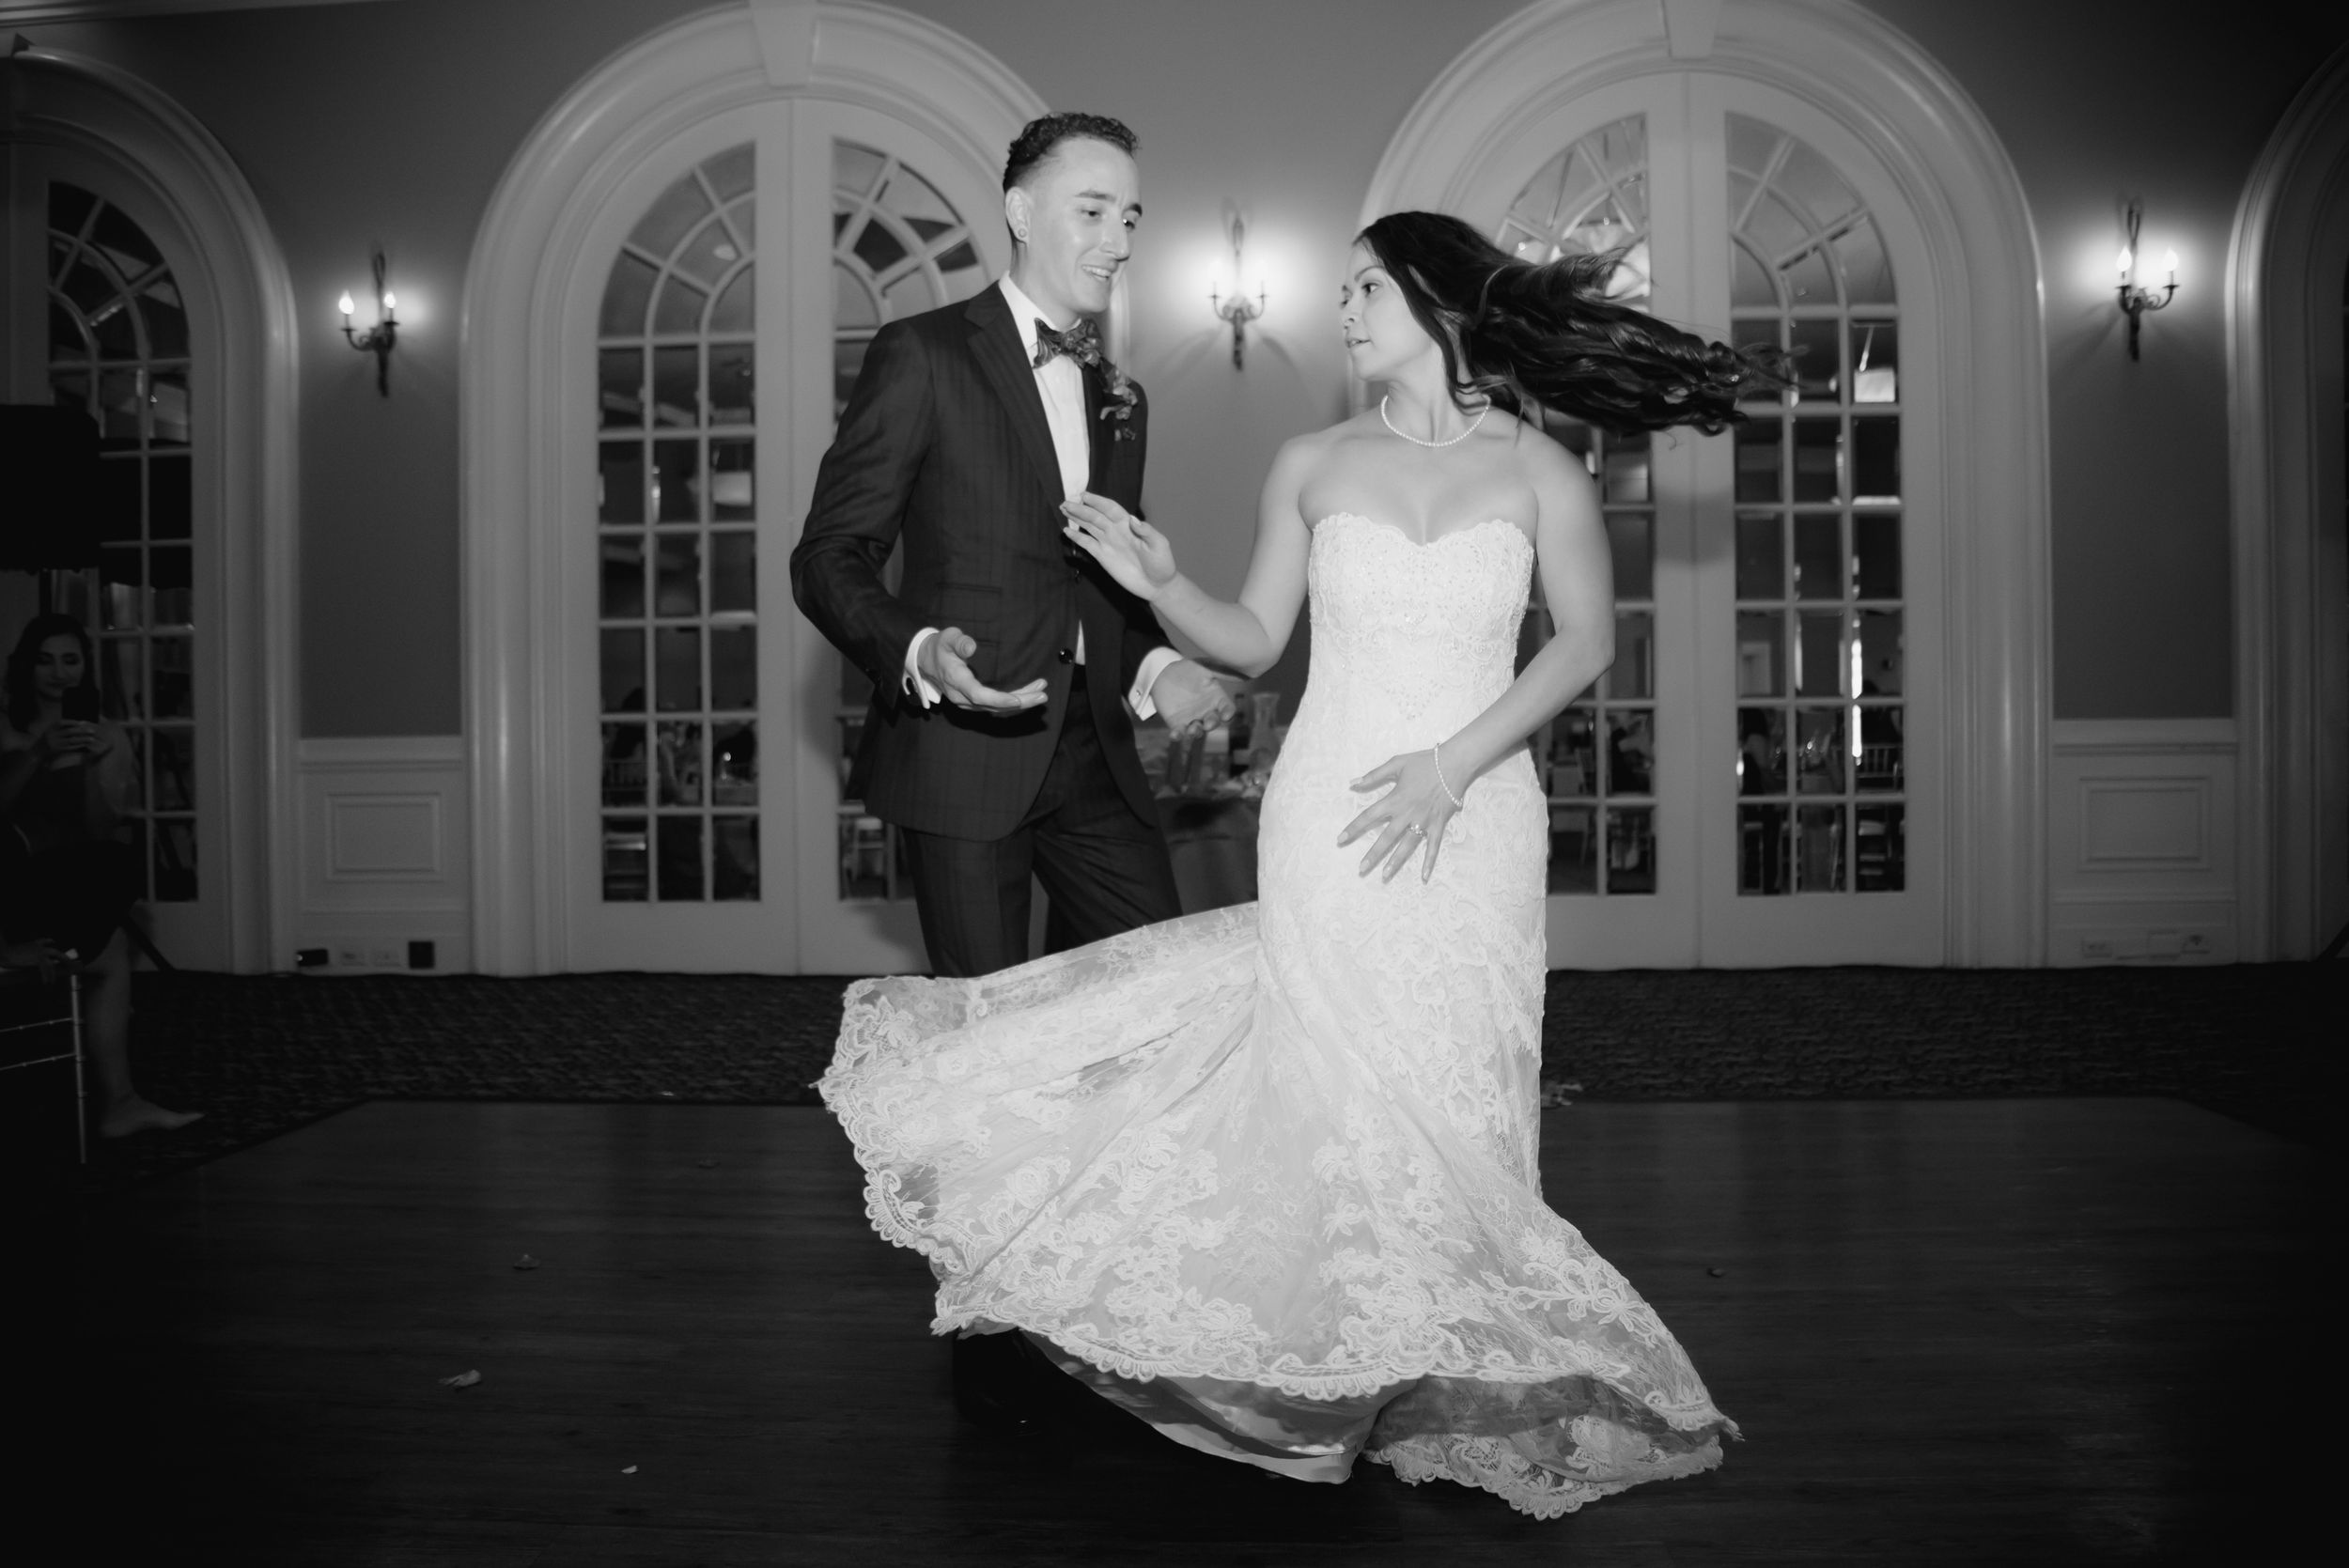 Sacramento photographer - Bride and groom dance at Sterling Hotel, Sacramento, Calif.